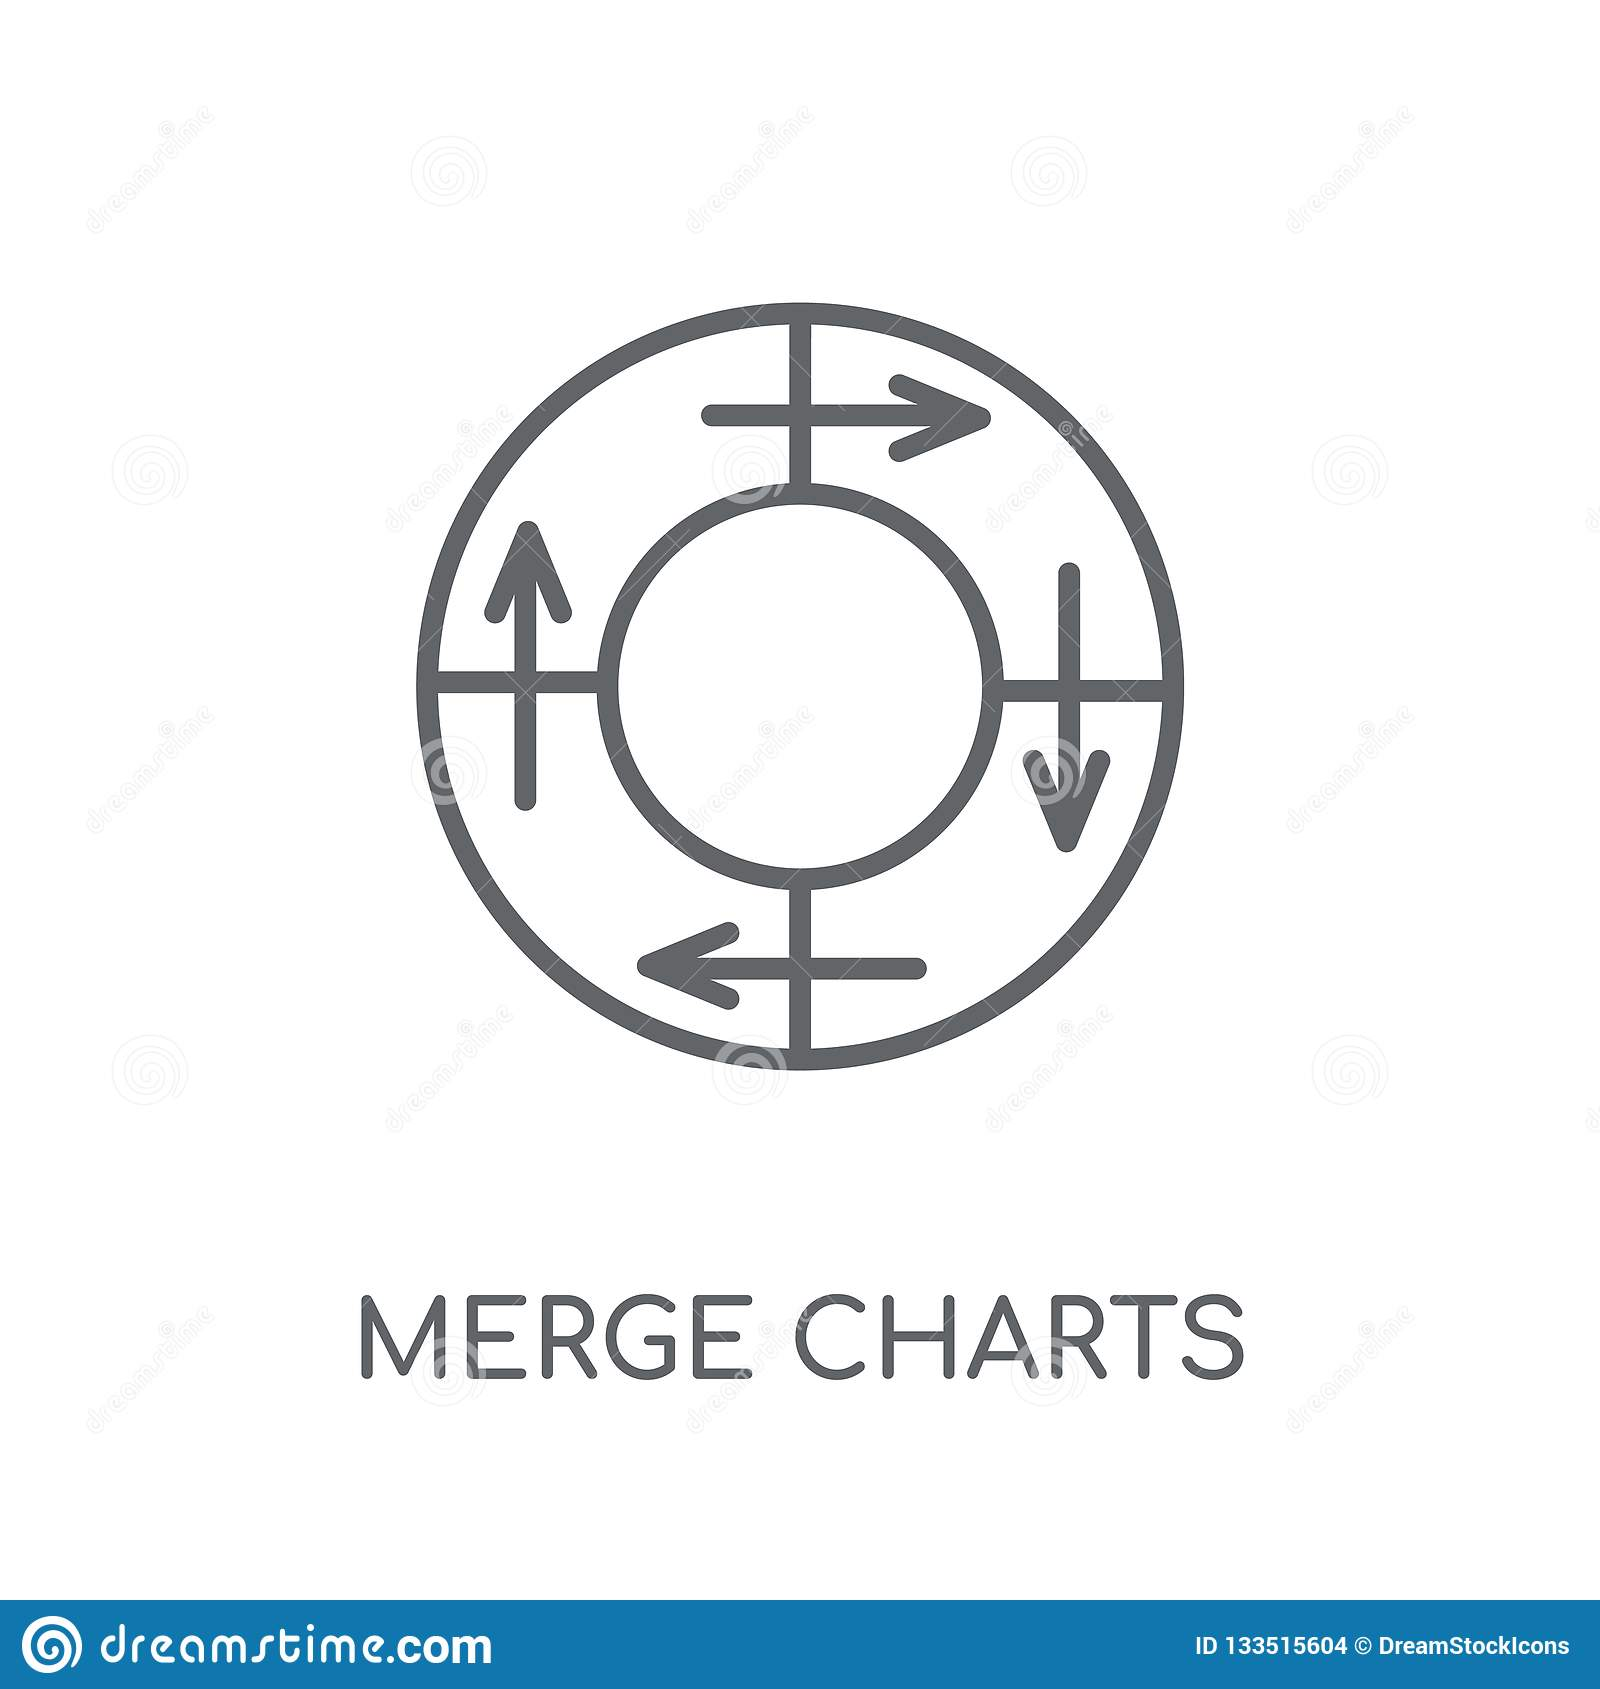 Merge charts linear icon. Modern outline Merge charts logo conce